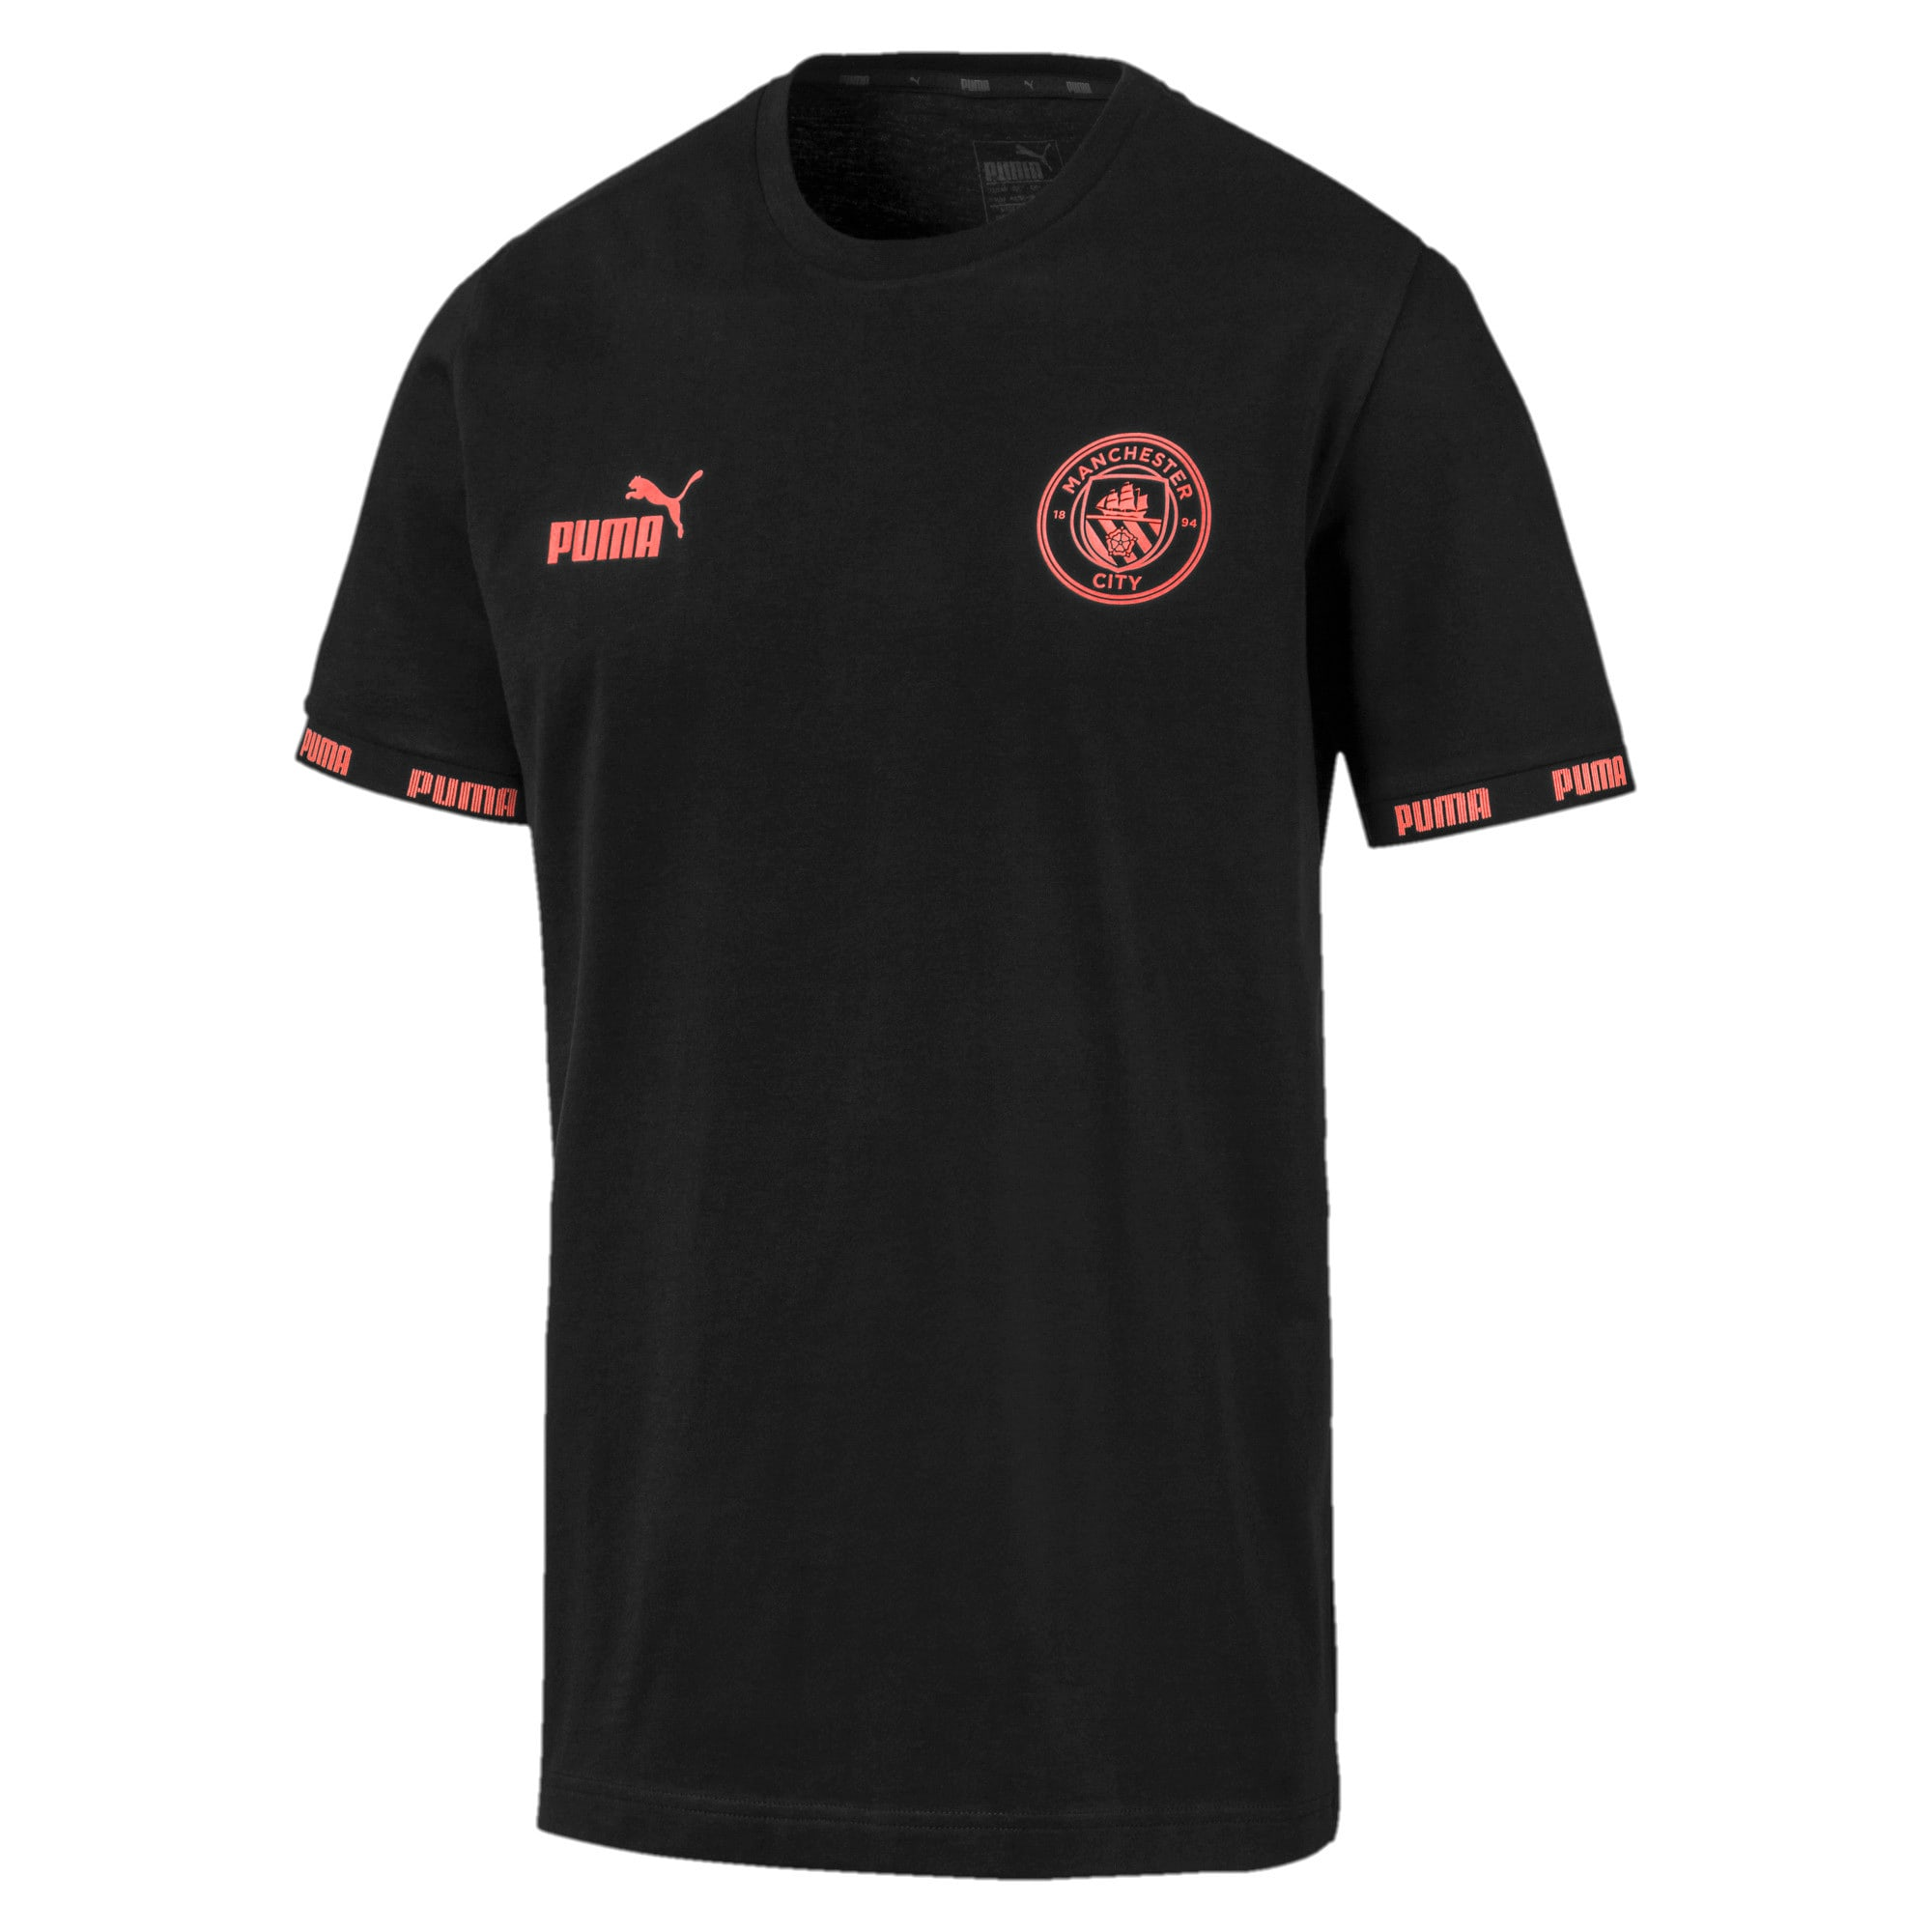 Camiseta de fútbol de hombre Culture Man City, Puma Black-georgia peach, grande